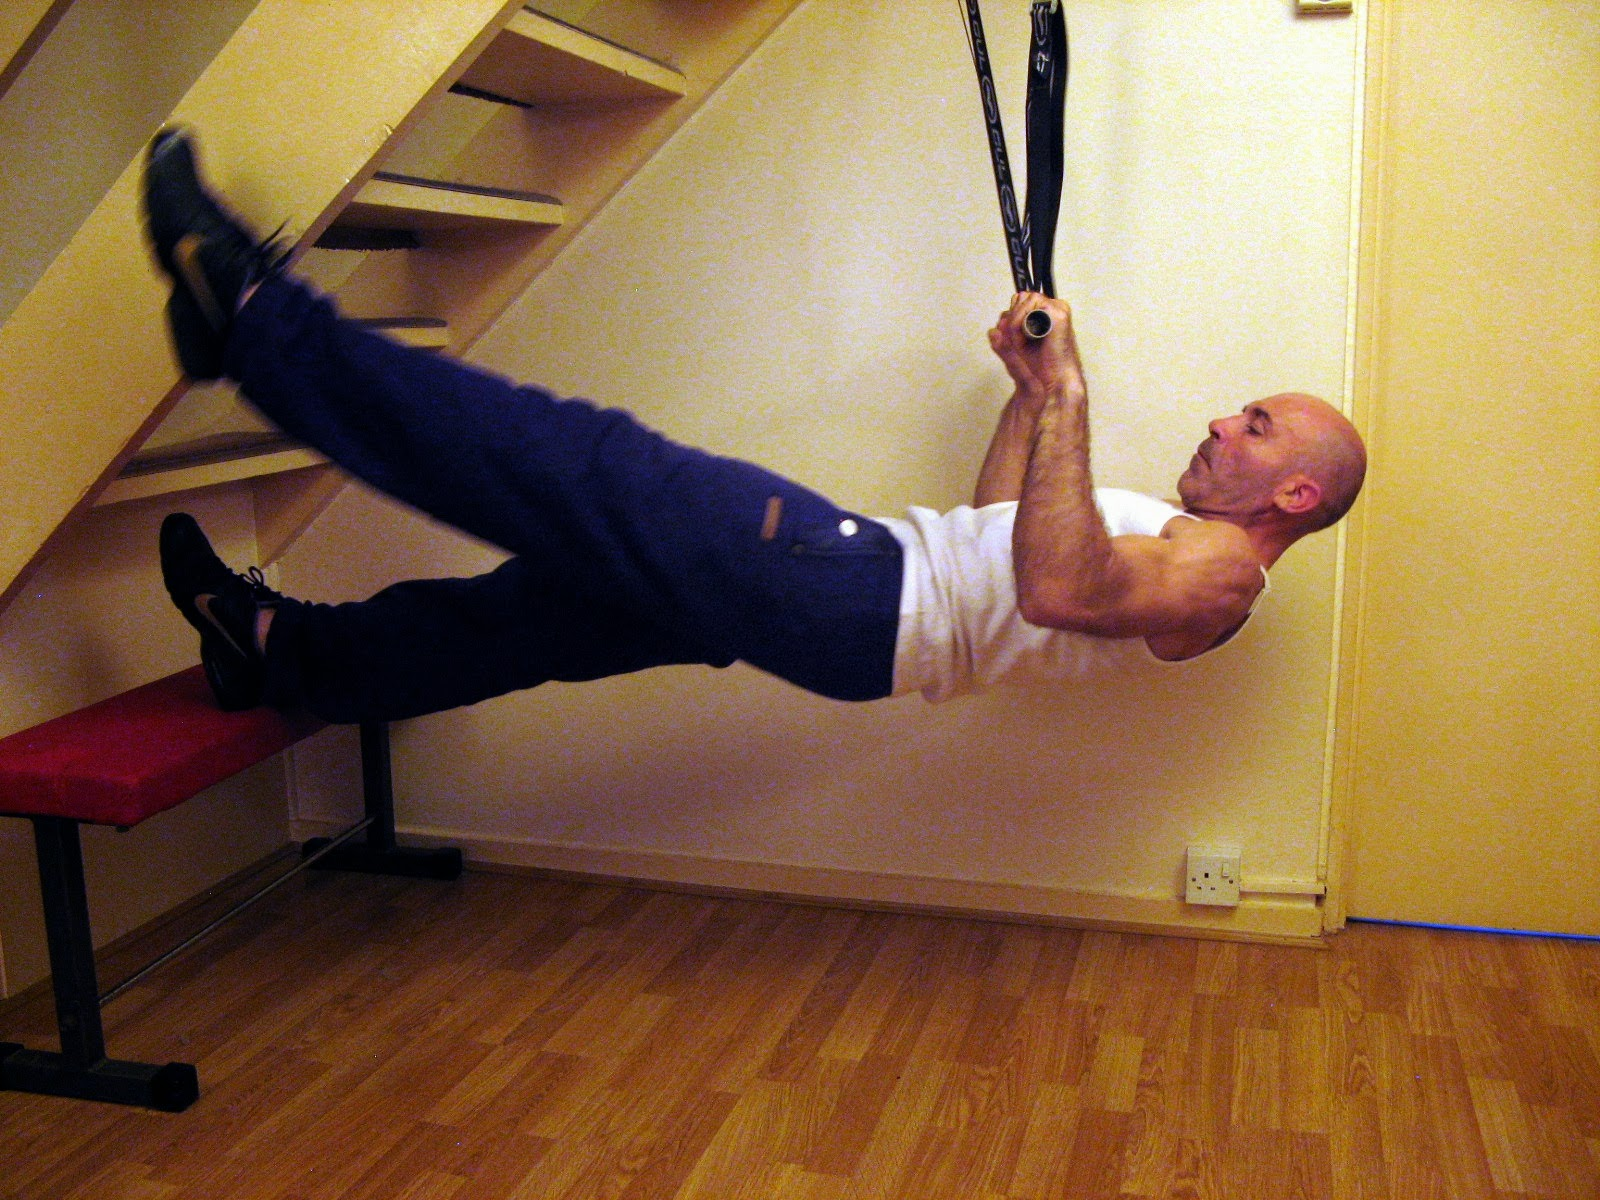 Dip station and gymnastic rings body fitness